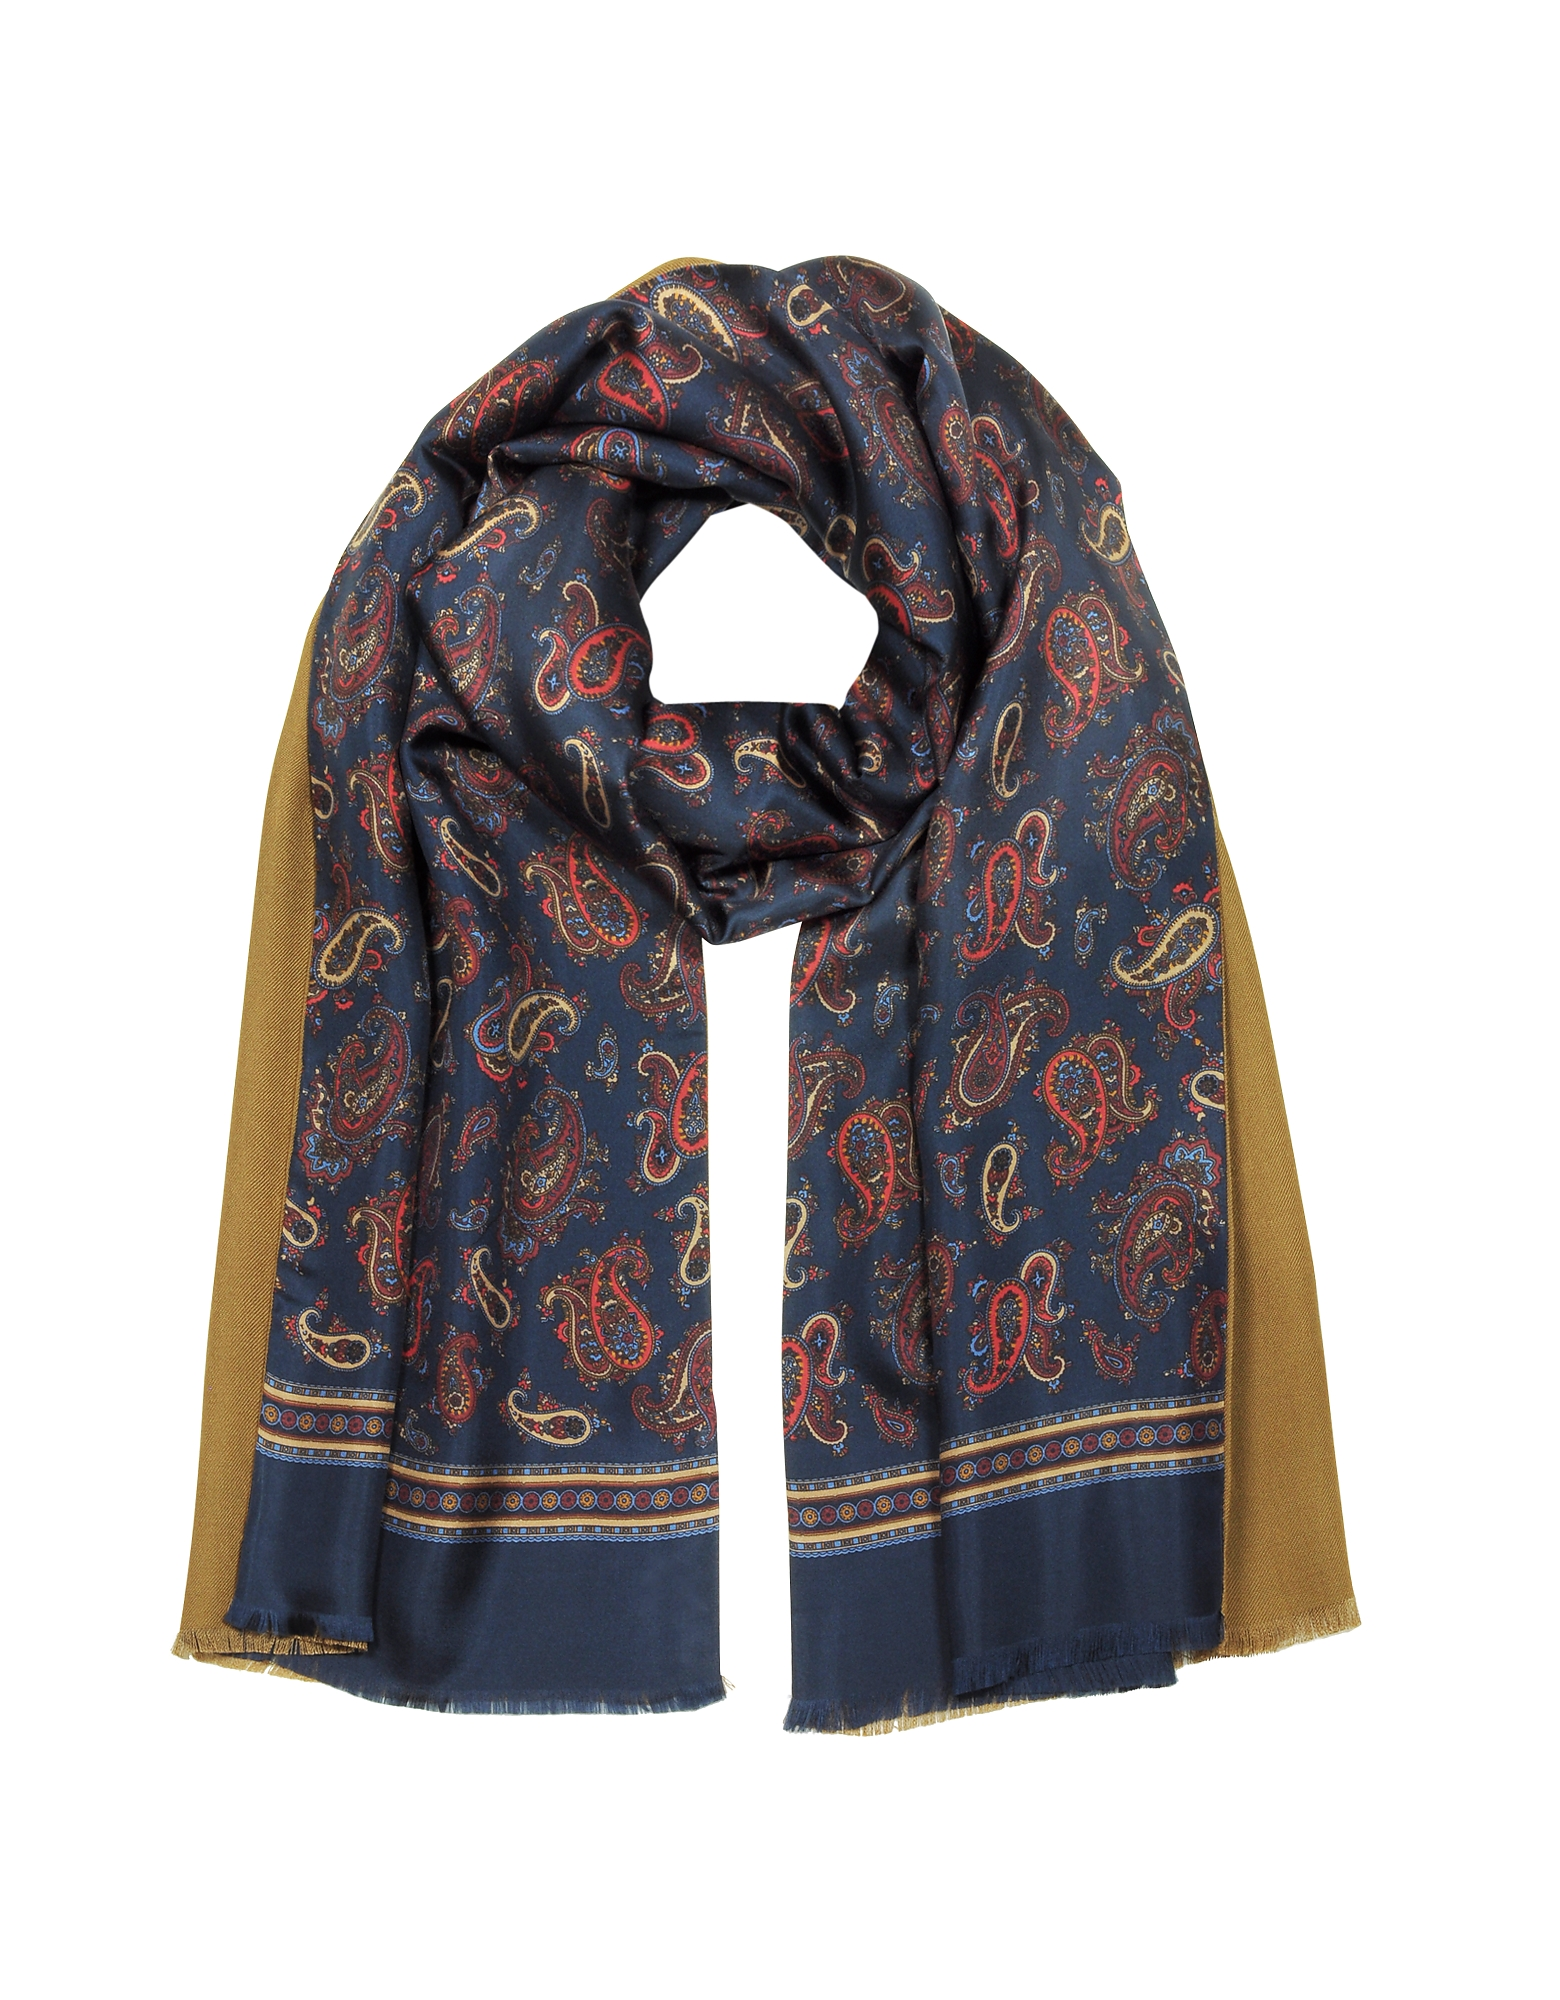 Forzieri Men's Scarves, Maxi Paisley Print Blue Silk and Camel Modal Reversible Men's Scarf